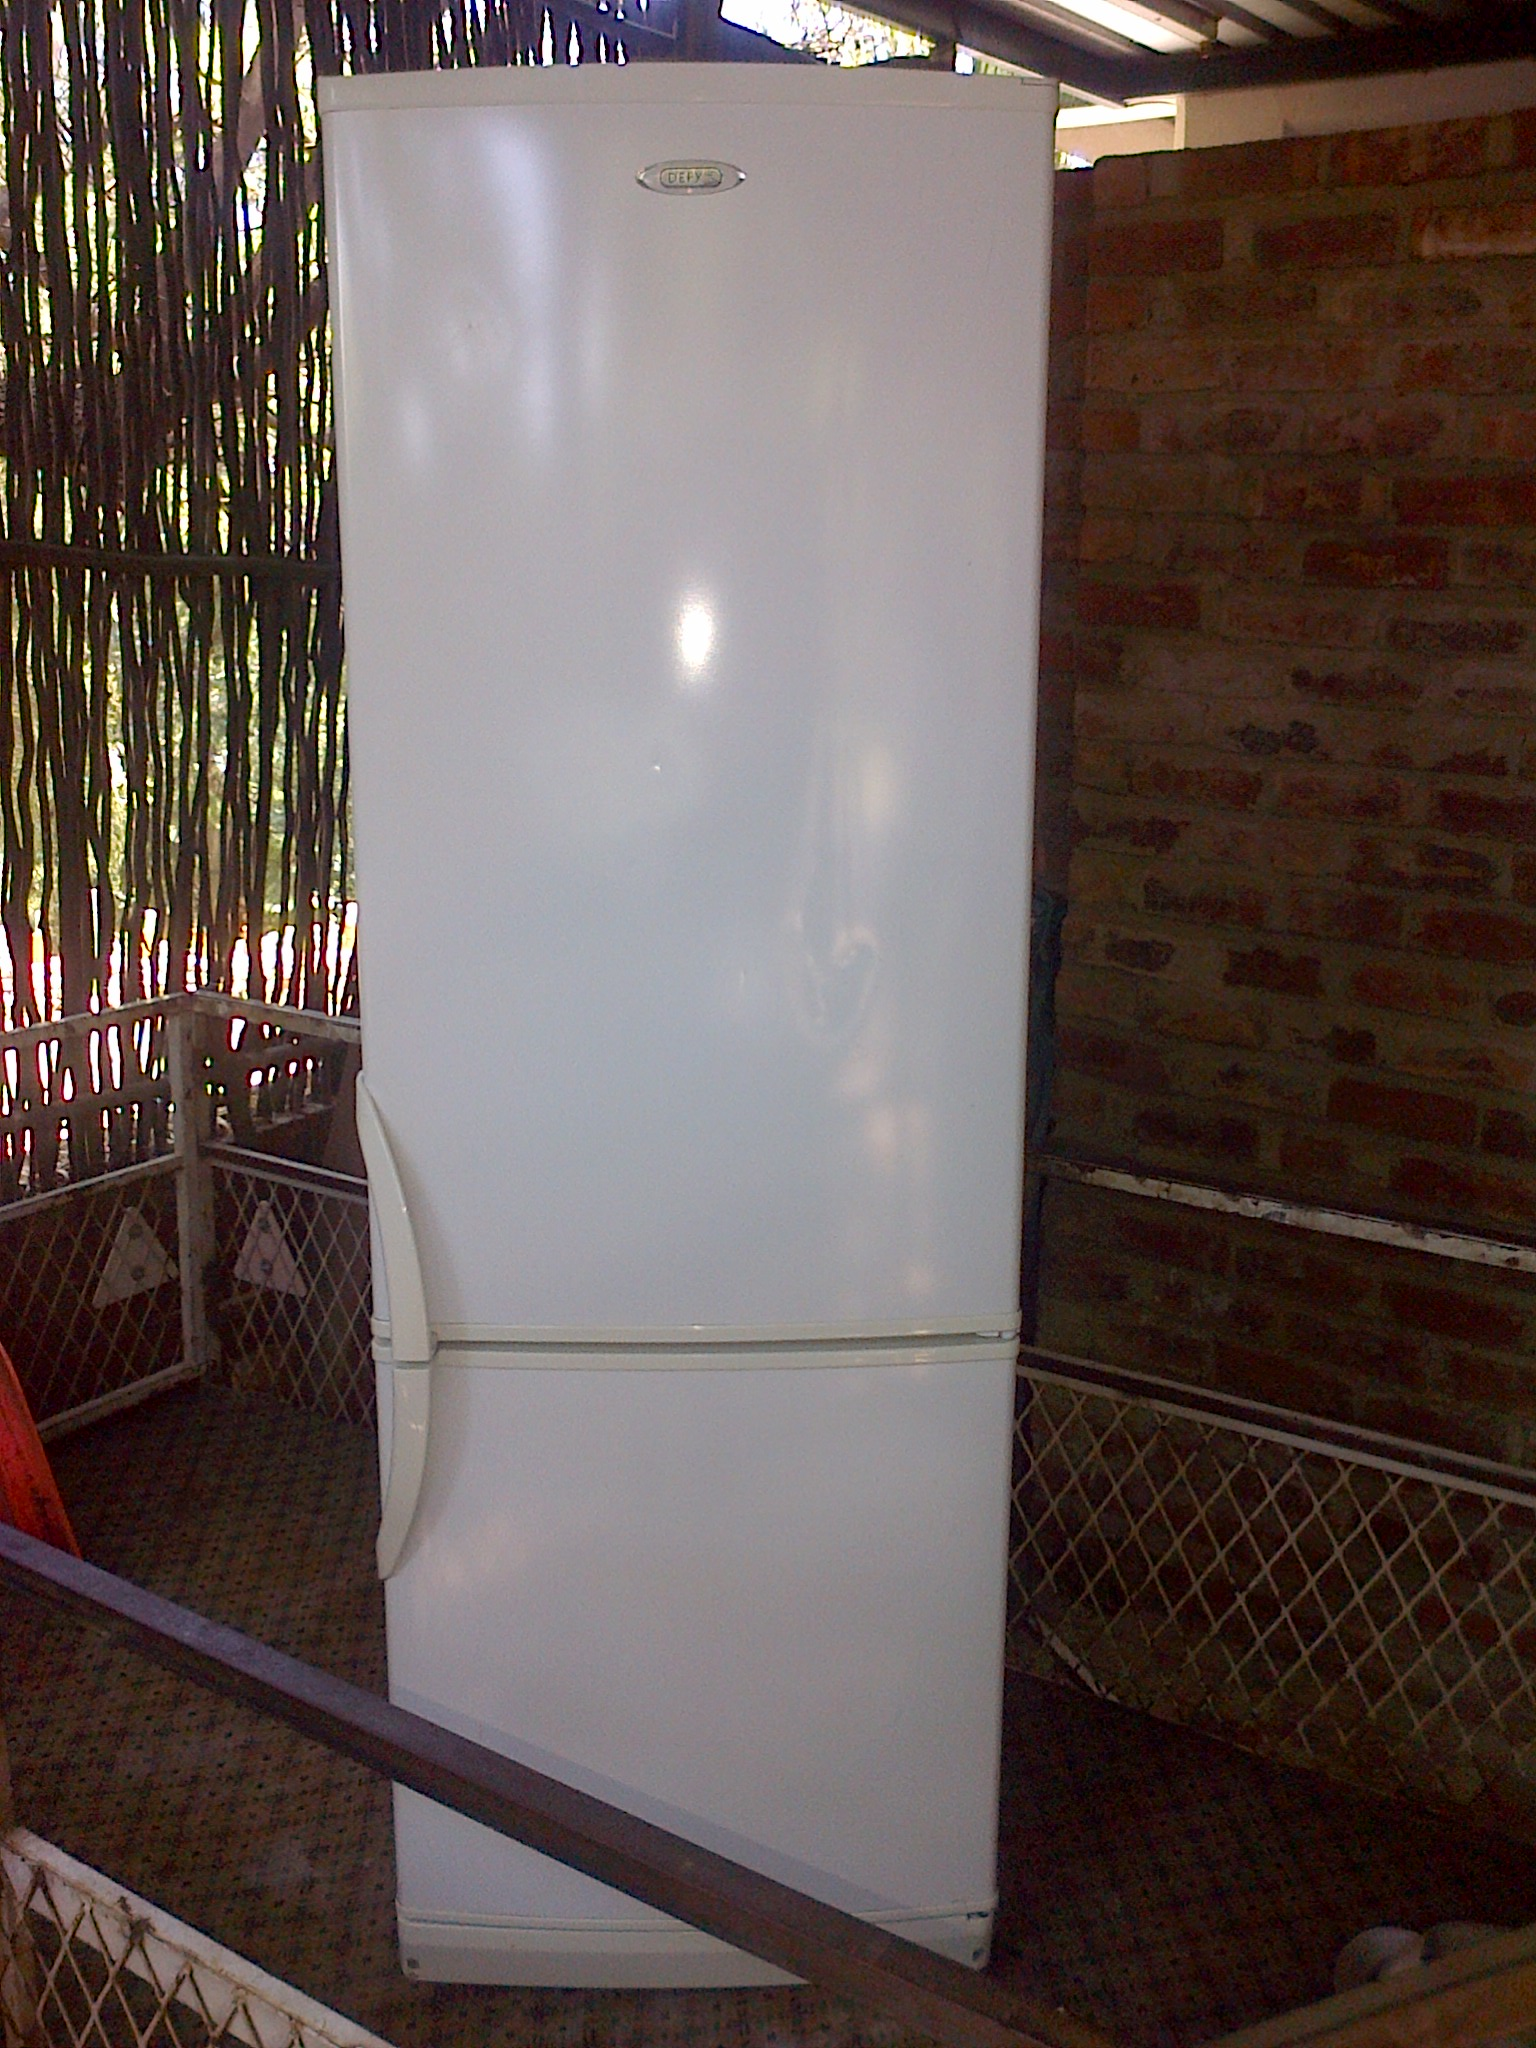 White DEFY 320 liter double door fridge freezer in good condition and working 100% for sale - R1695 cash - I CAN DELIVER